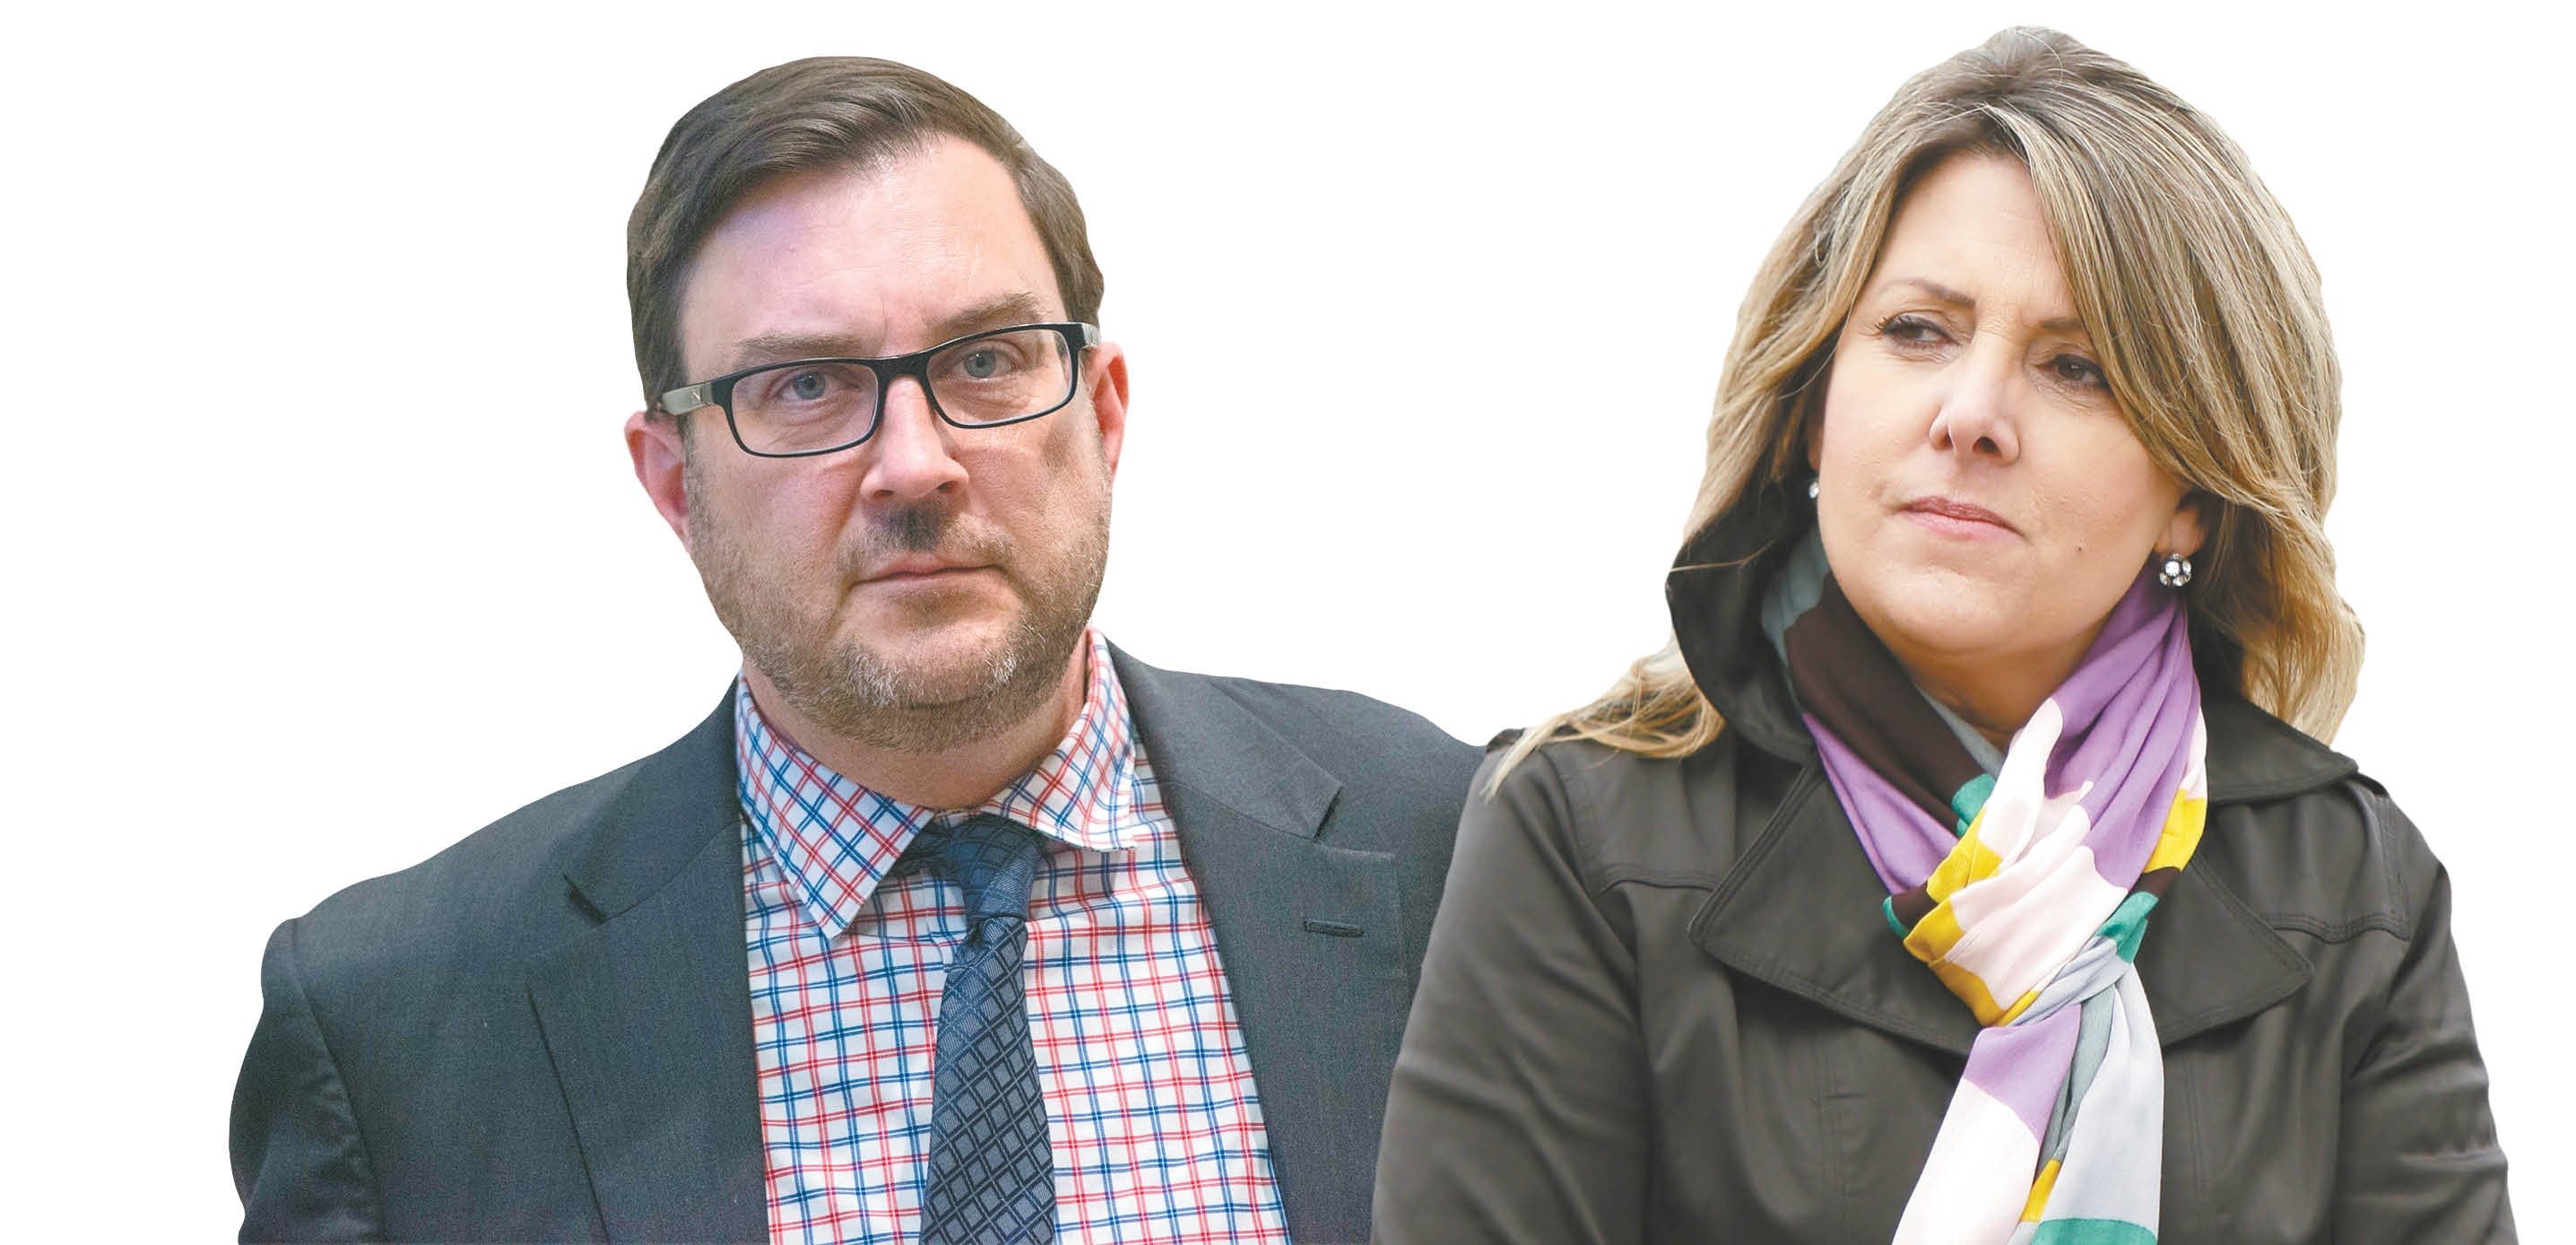 Mayor Nadine Woodward brought in a third party — the state auditor's office — to look into concerns that involved her former opponent, Ben Stuckart. Yet the auditors never actually talked to Stuckart during their inquiry. - DANIEL WALTERS AND YOUNG KWAK PHOTOS